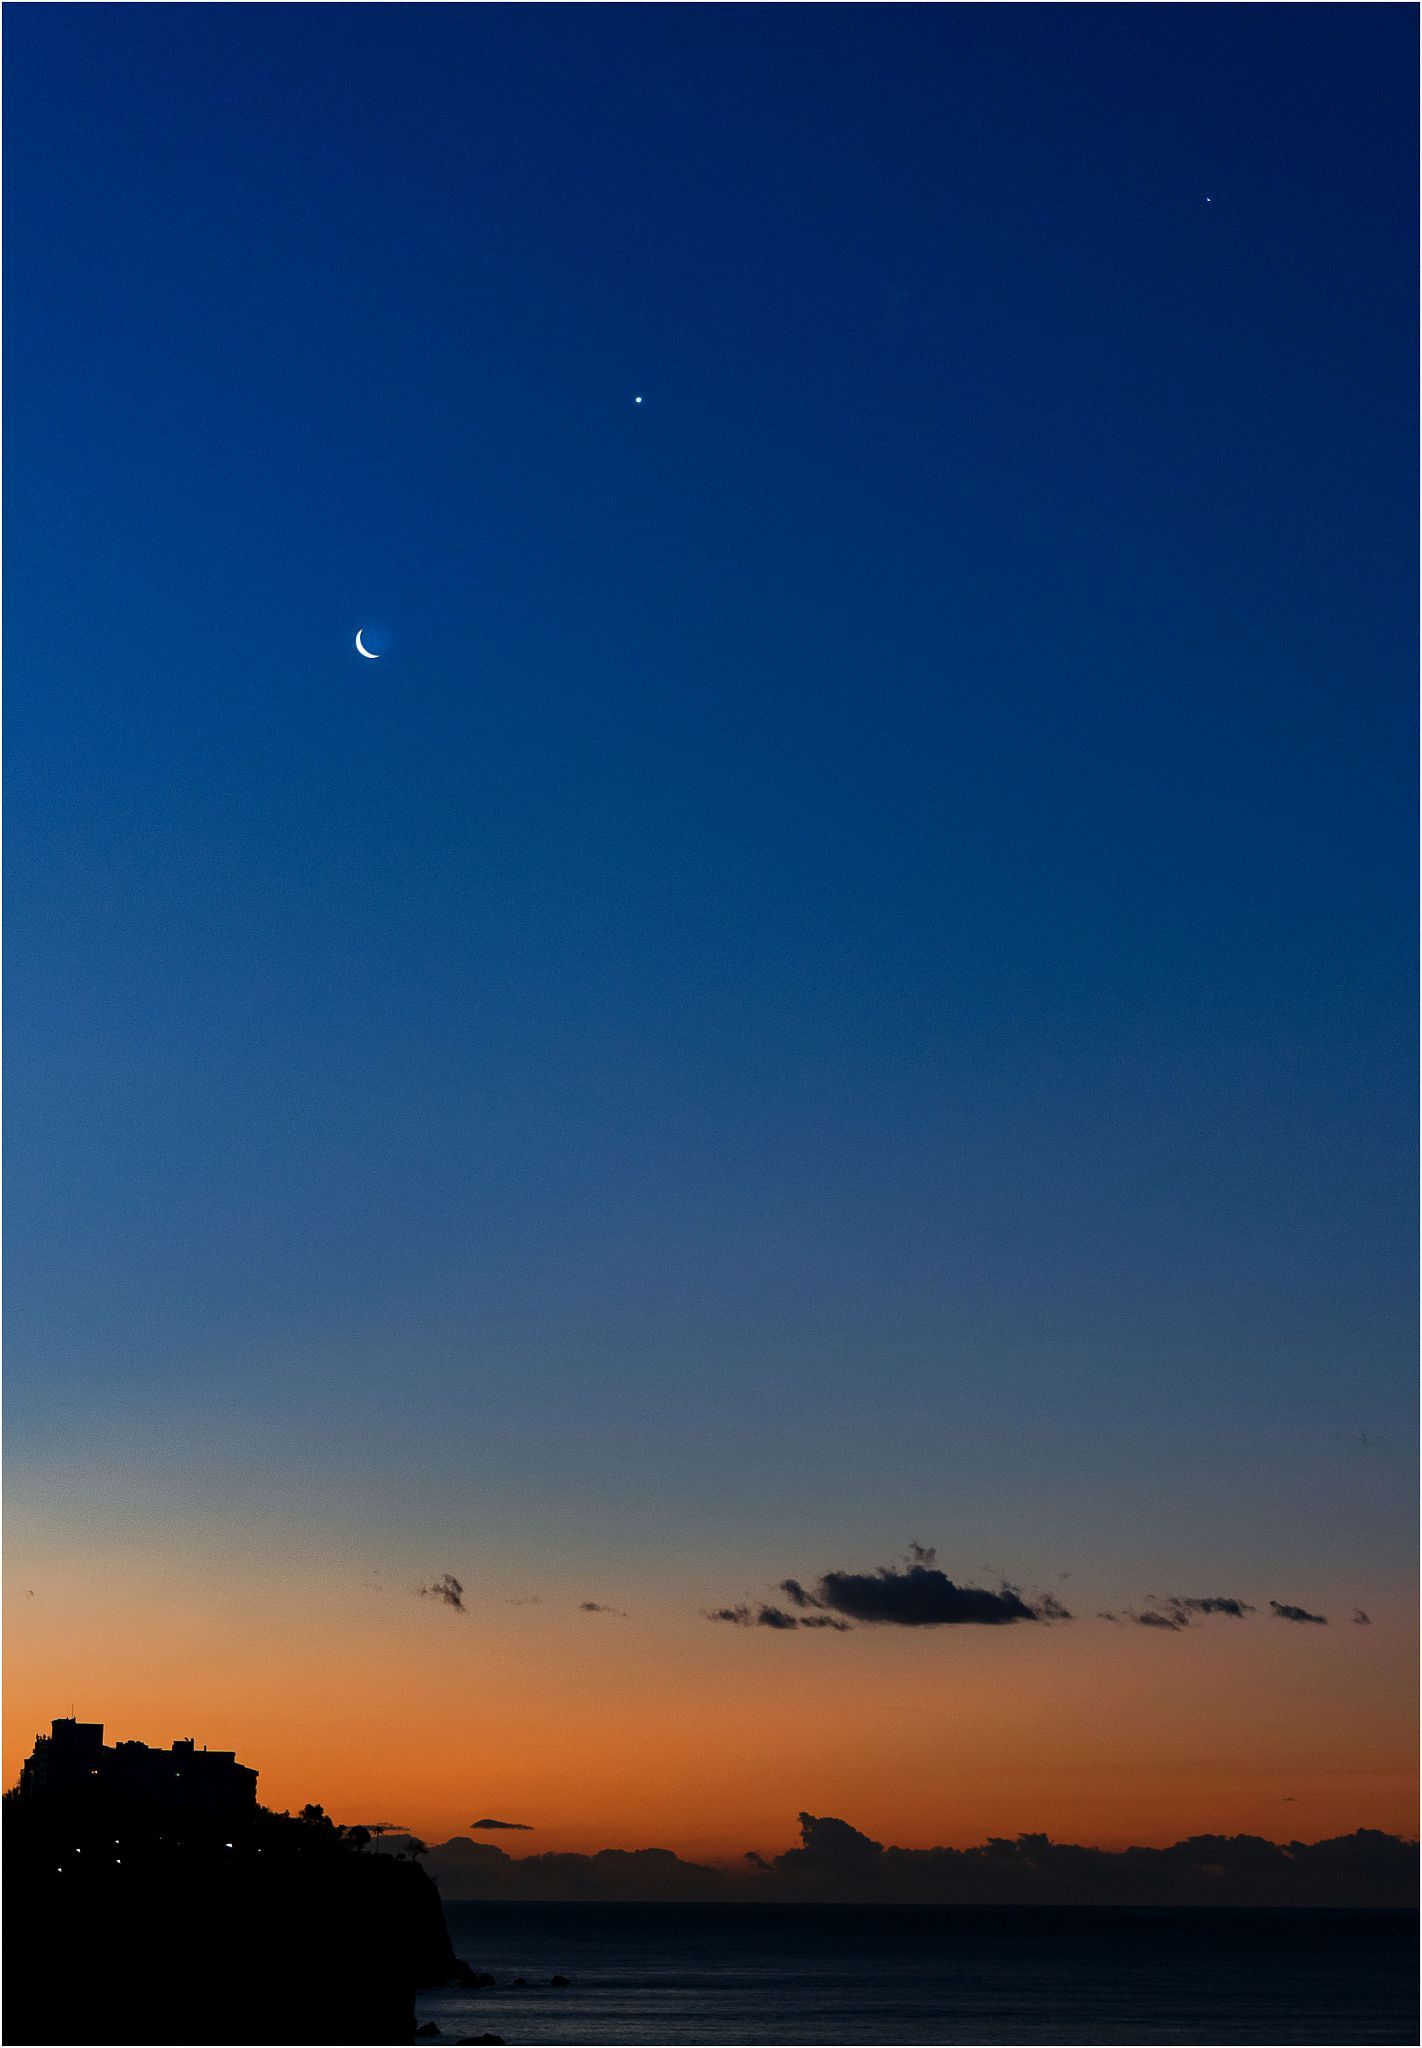 Crescent moon near 2 tiny planets in dark blue sky with a layer of orange near the dark horizon.